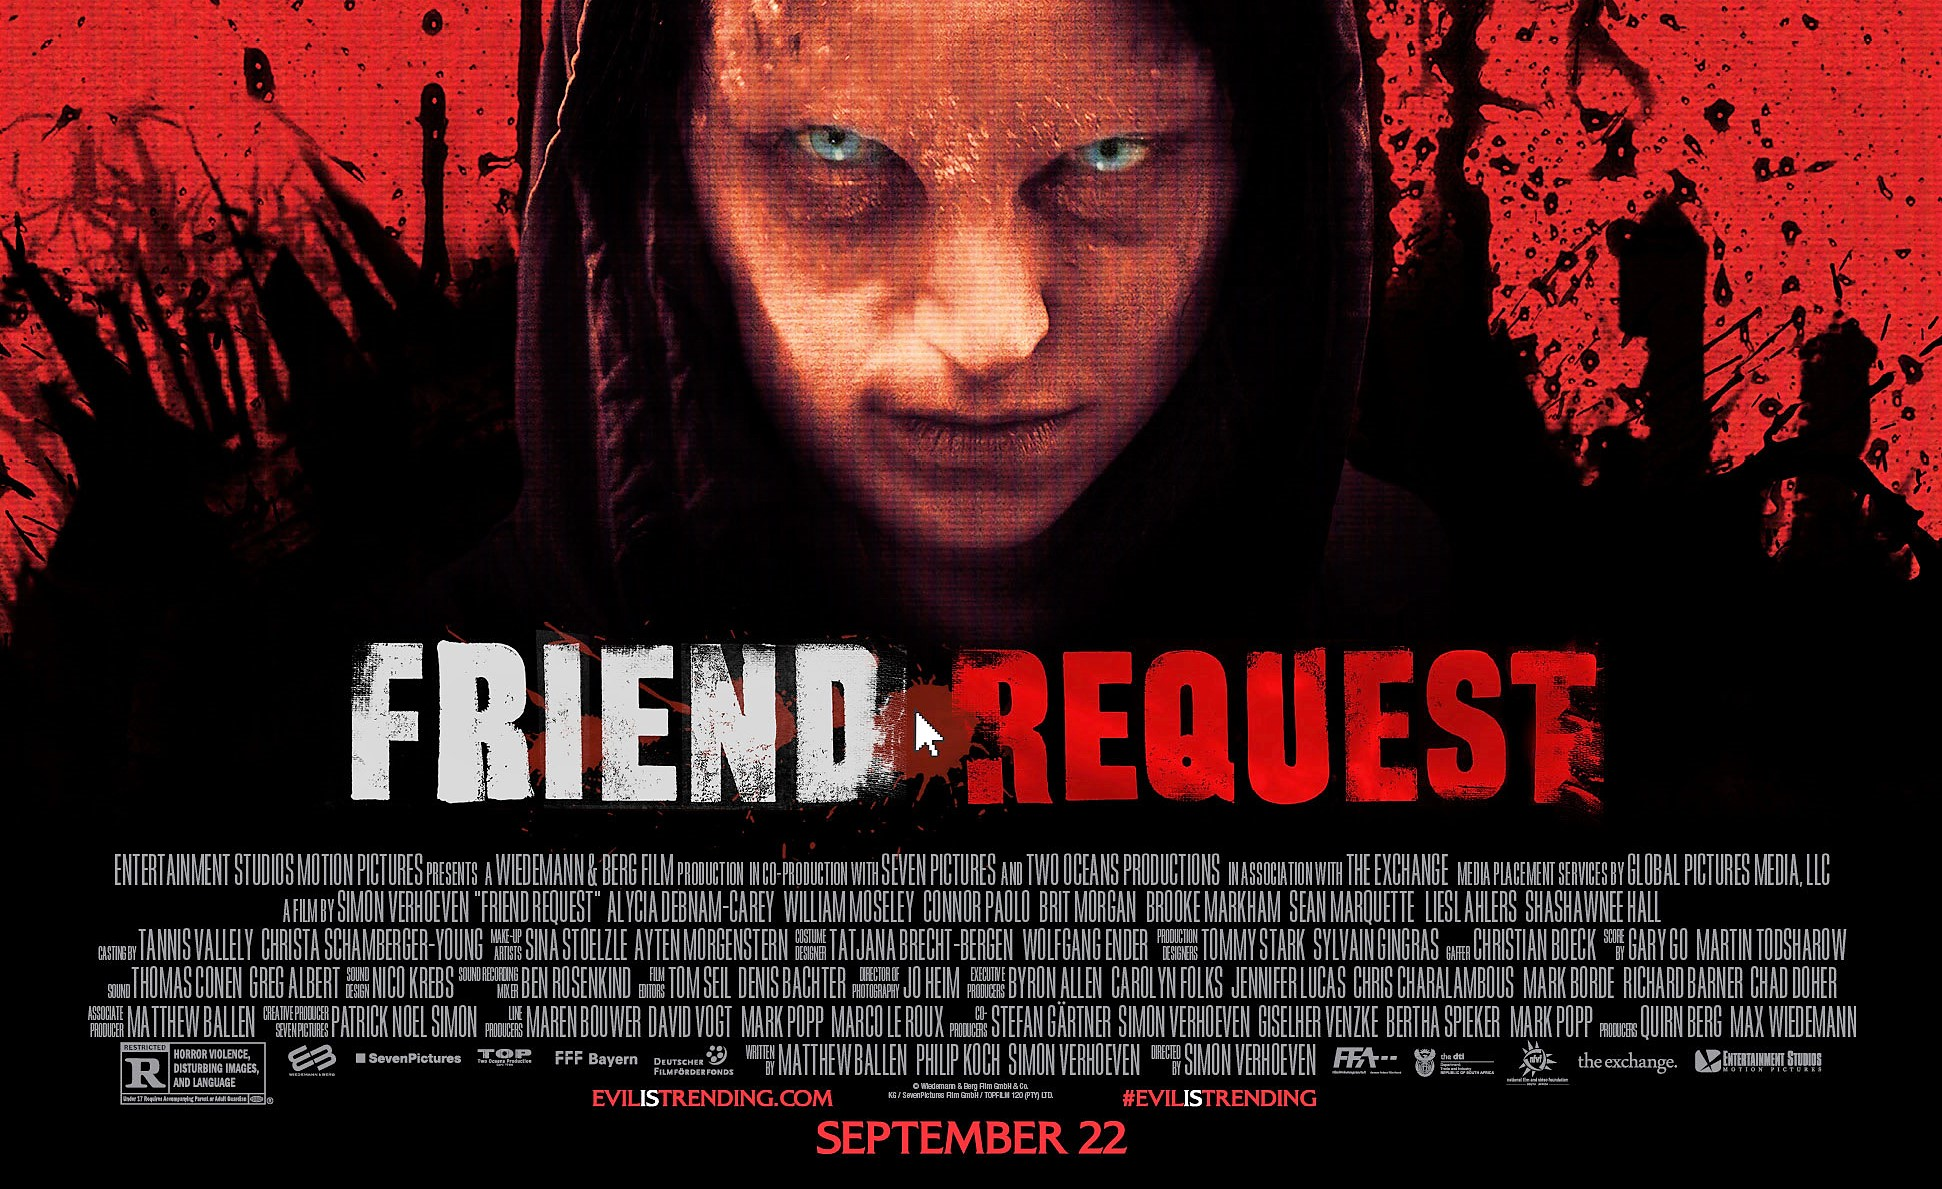 With laughable dialogue and ankle-deep message, 'Friend Request' misses its mark